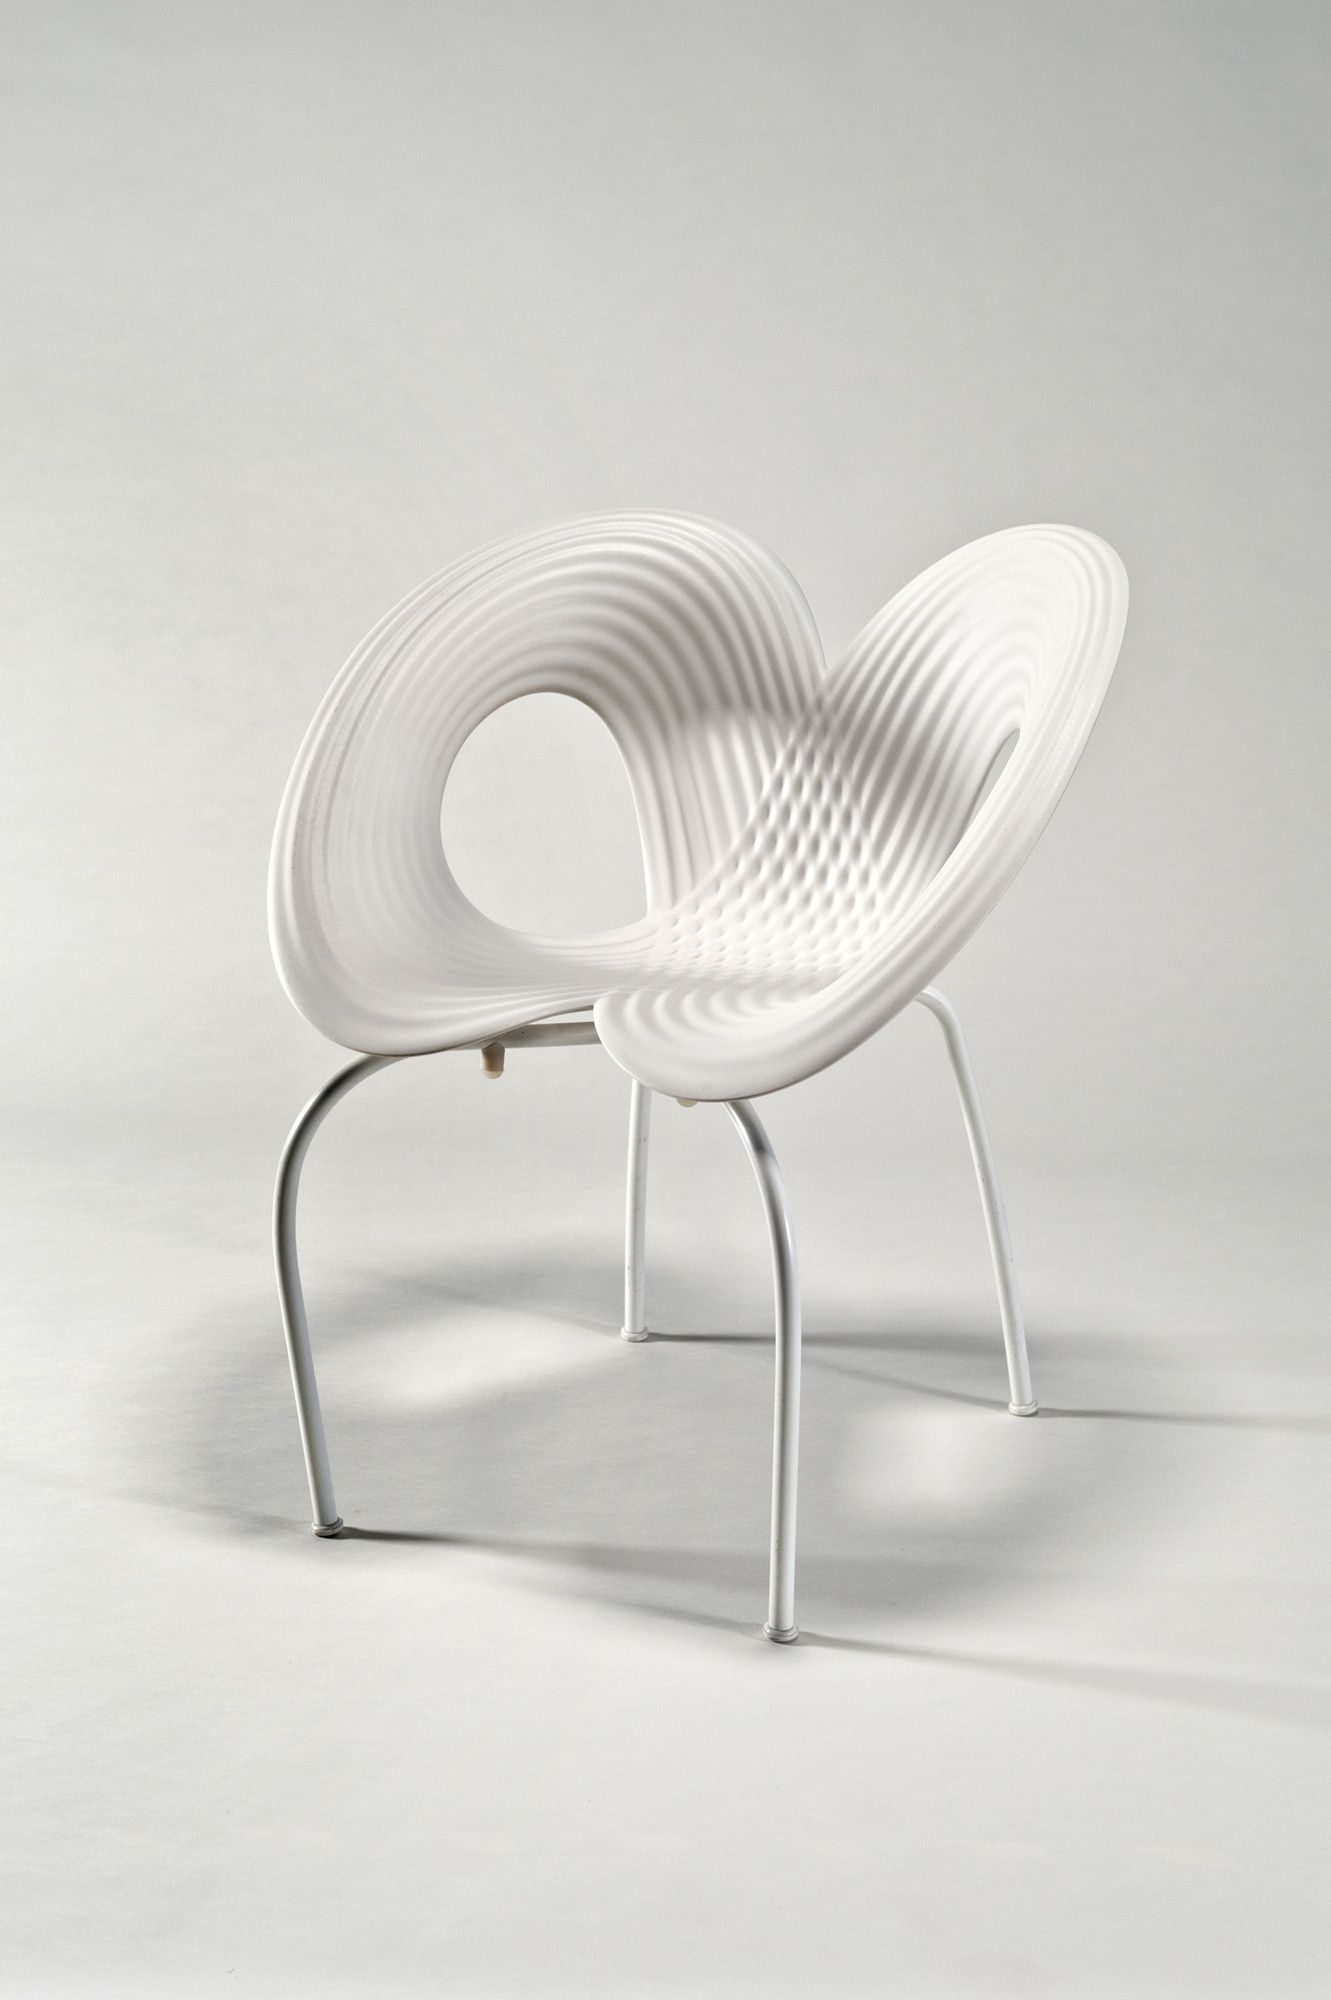 Ripple chair handsigned by ron arad for moroso 单椅 pinterest